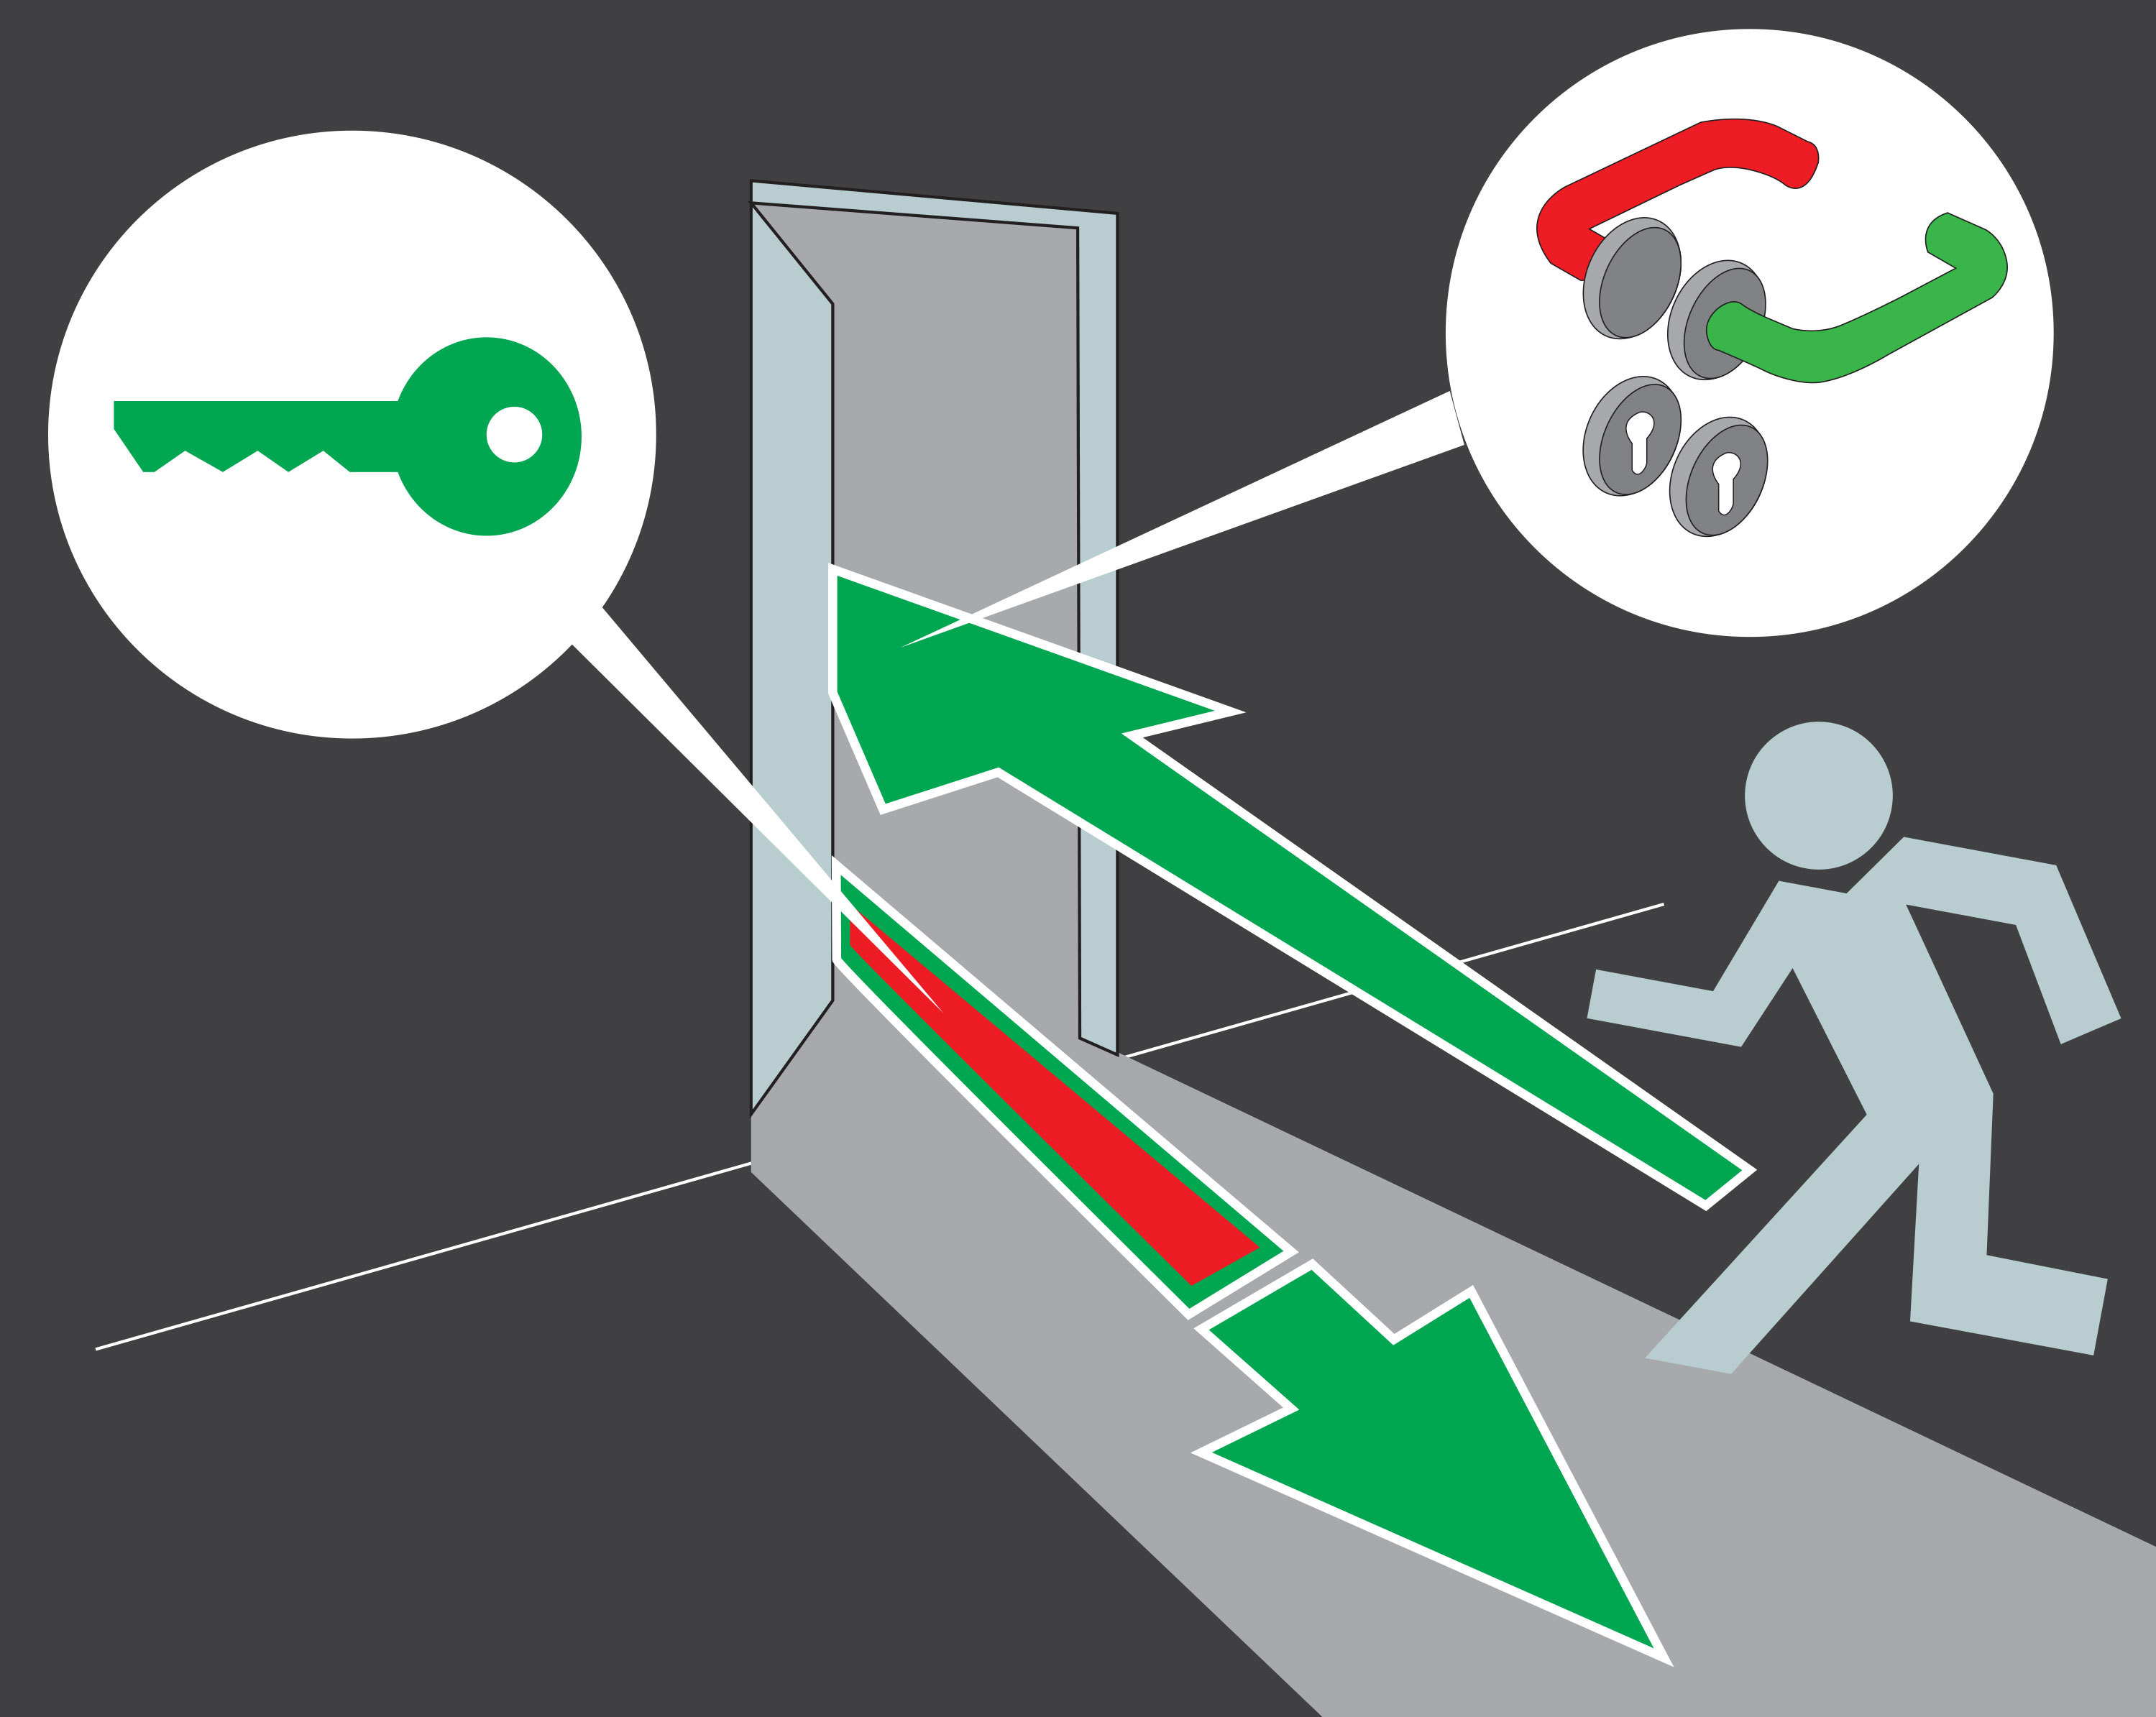 Door exit illustration forced closure function